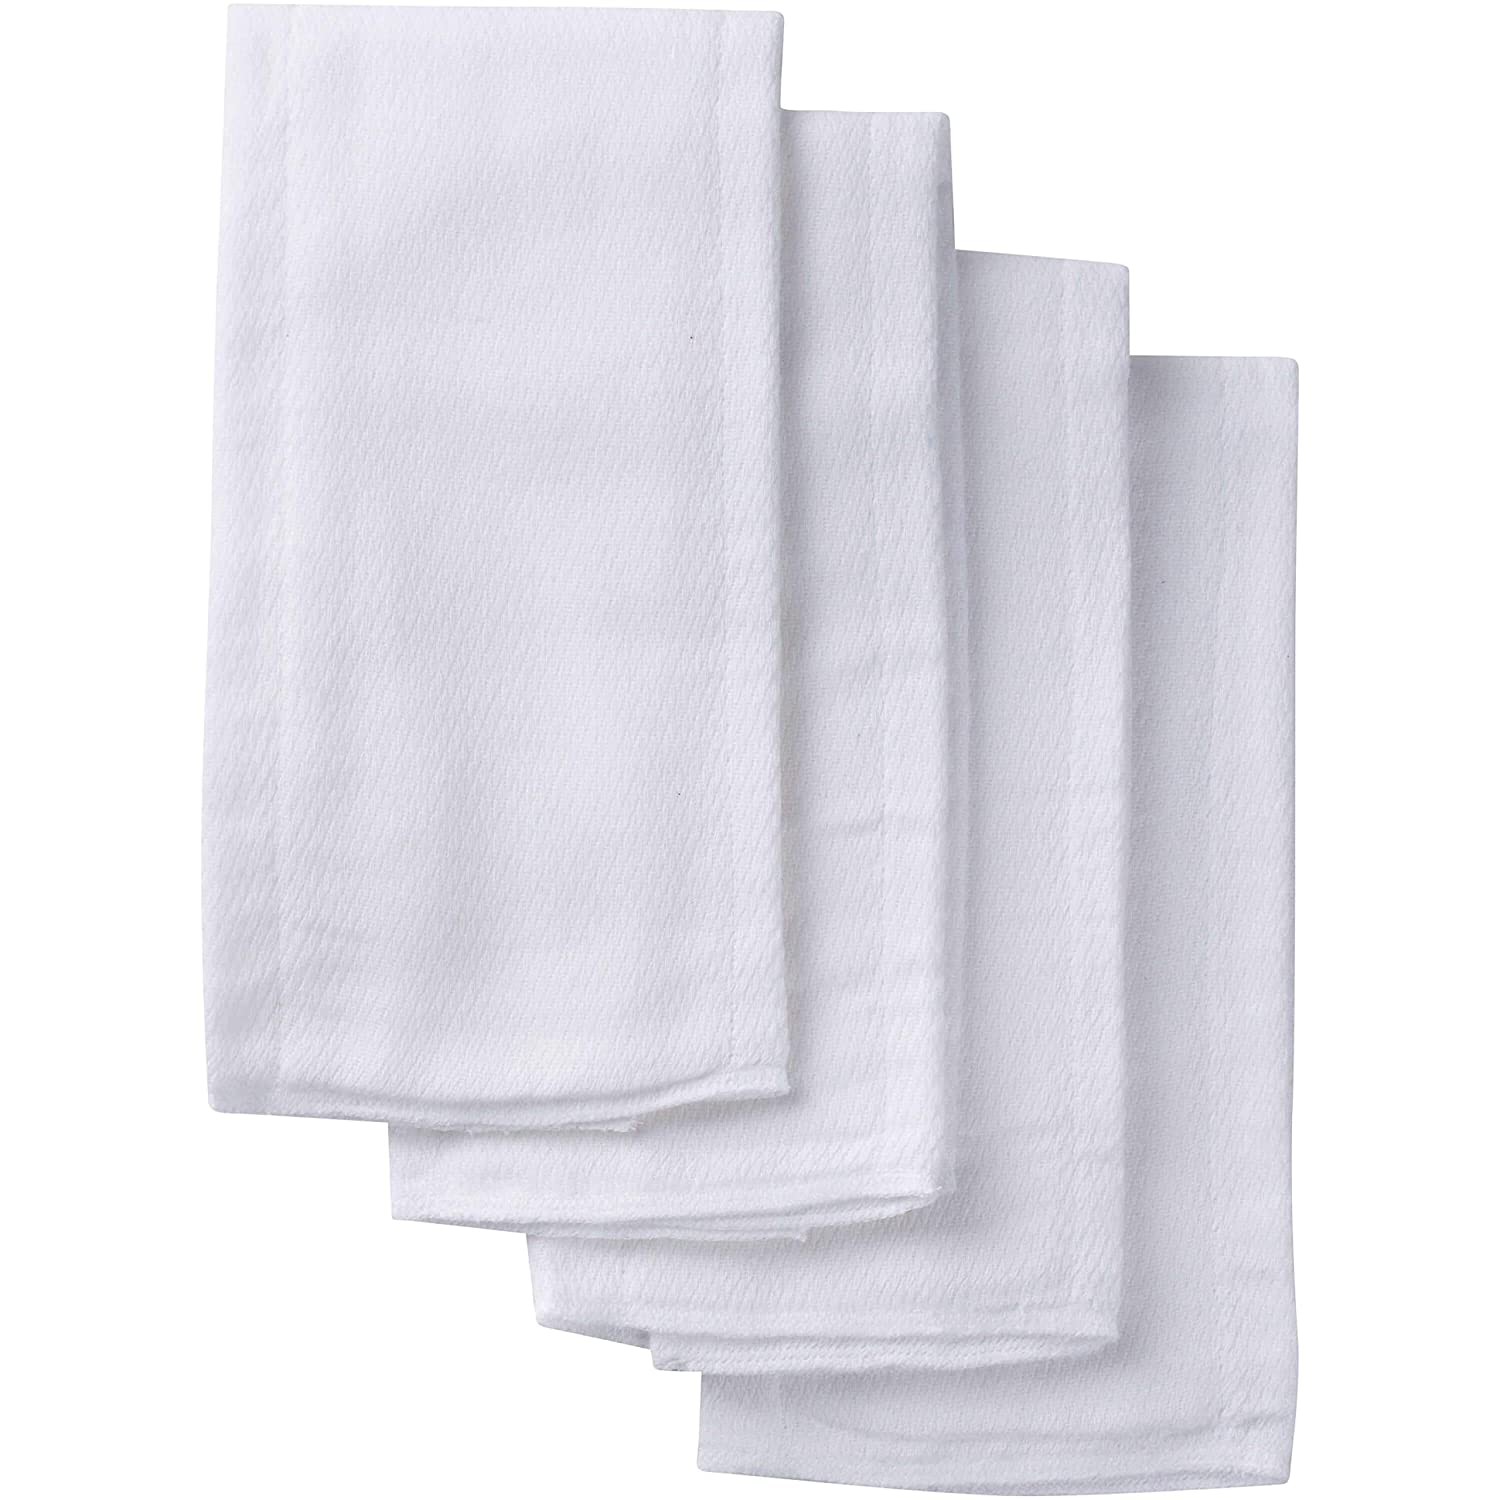 Gerber 10 Count Prefold Birdseye Diaper with Pad White